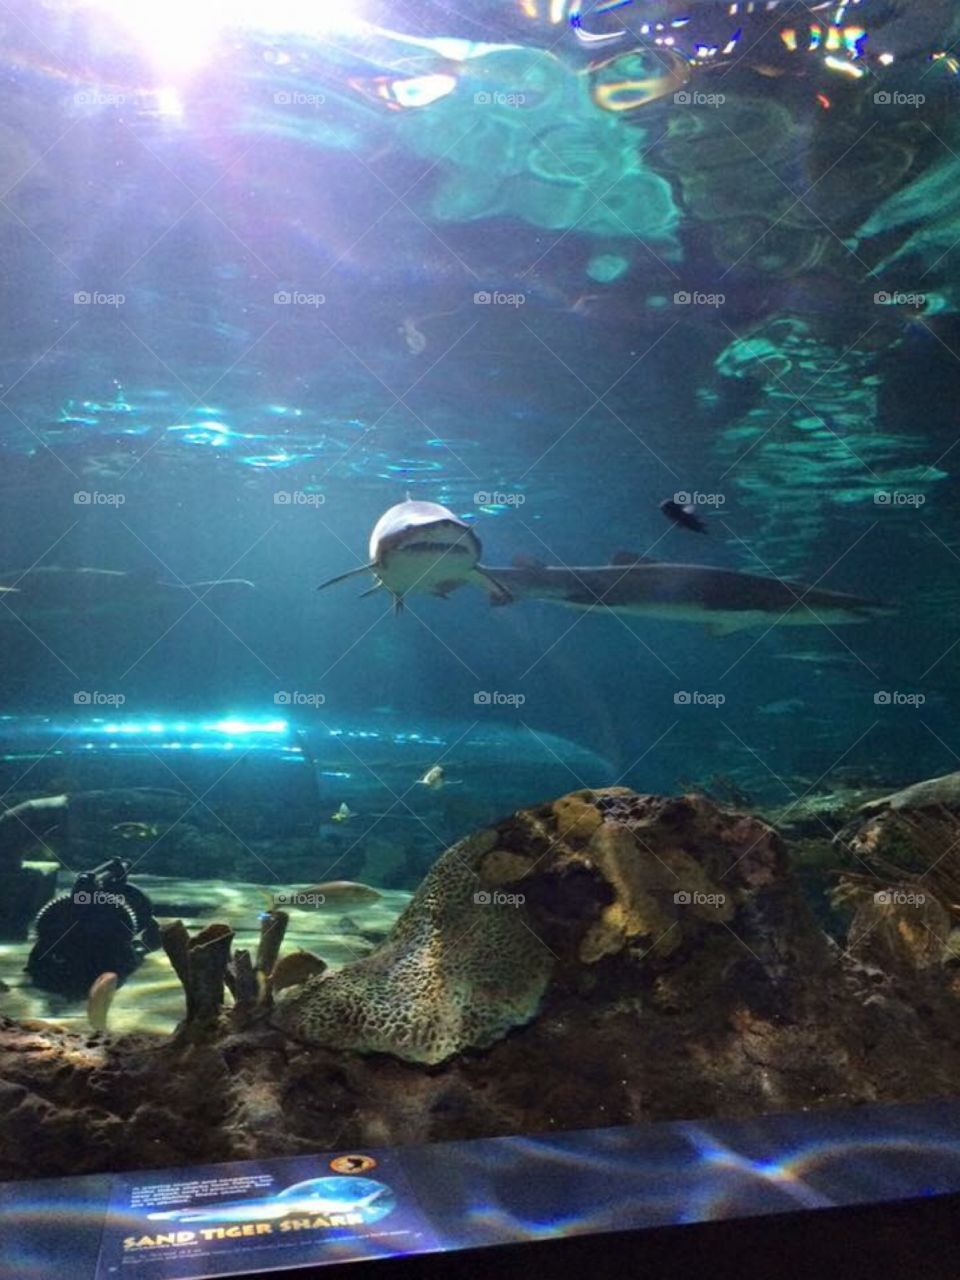 Sharks and fish at Ripley's Aquarium